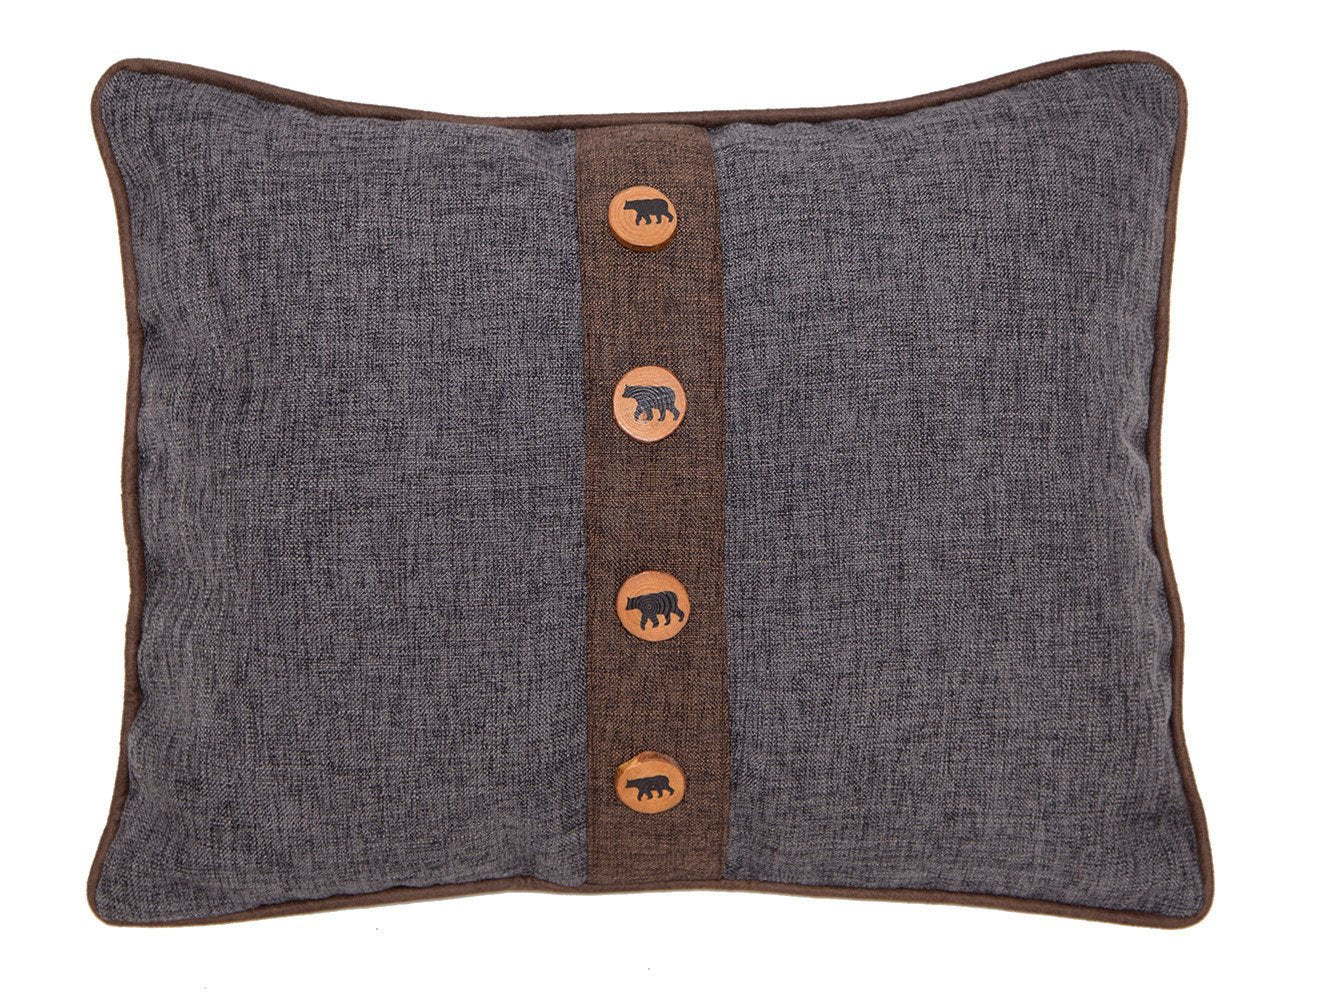 Rugged Earth Bear Pillow Carstens